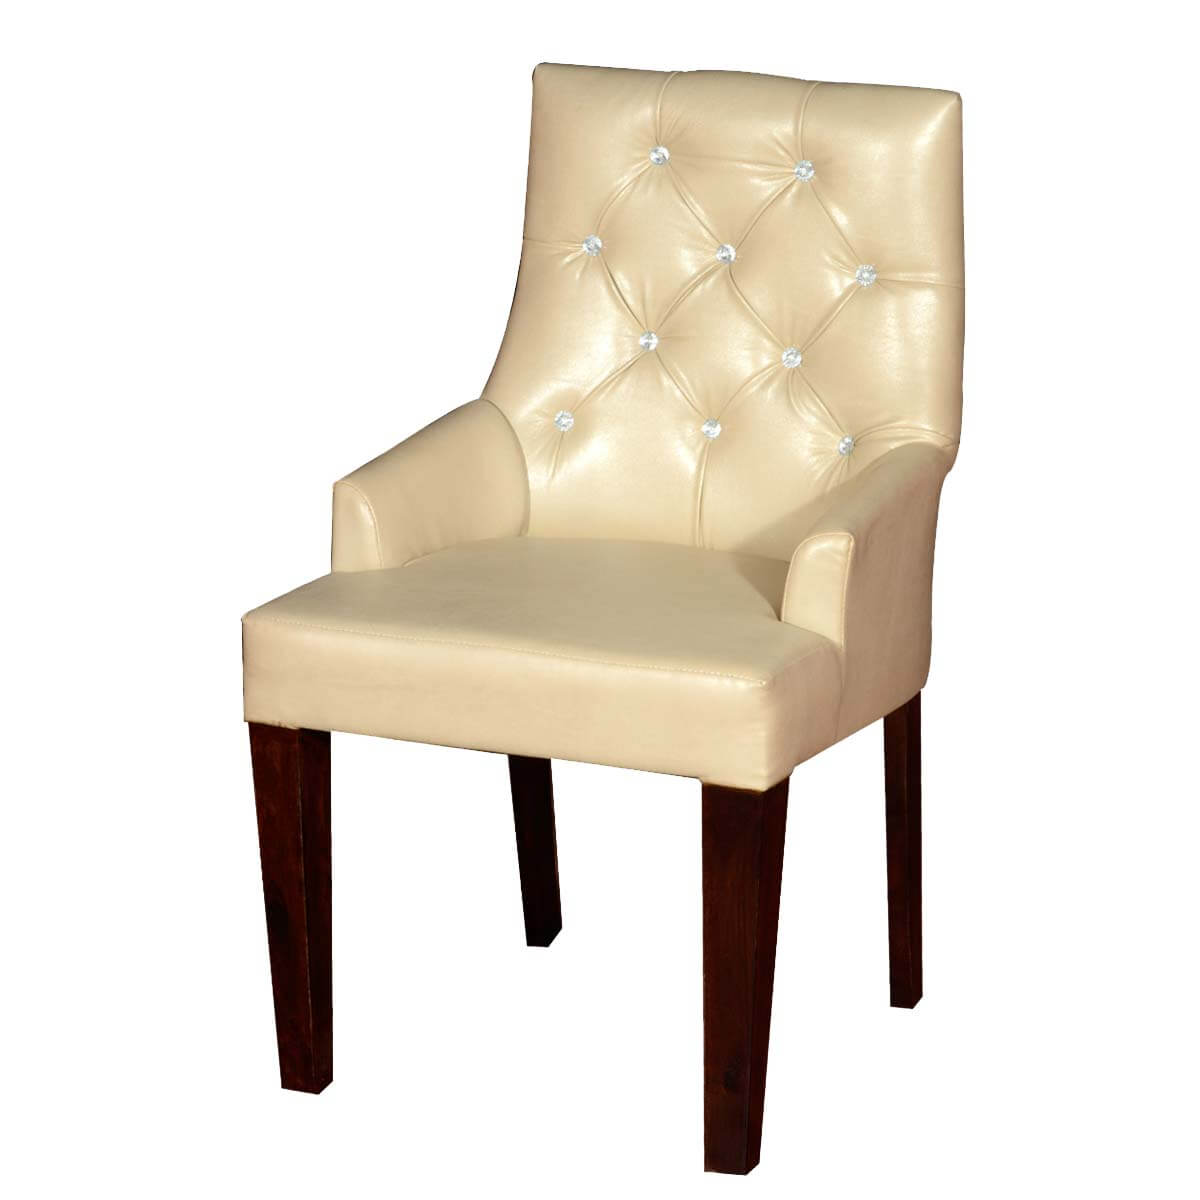 White Upholstered Chair Contemporary White Leather Upholstered Solid Wood Chair